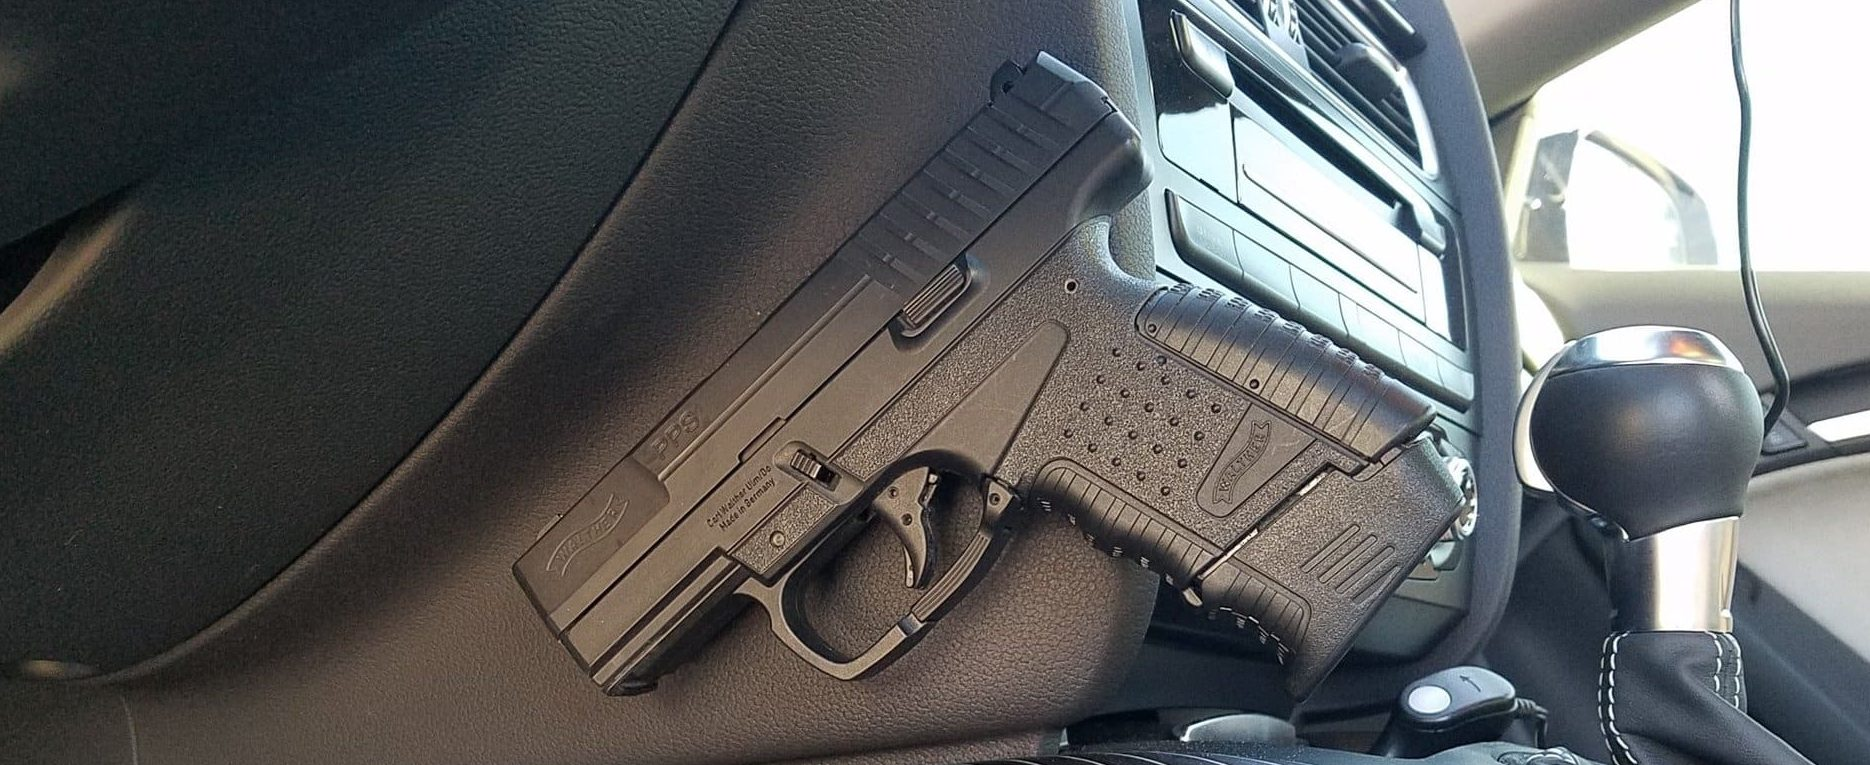 Top 5 magnet gun holsters for car in 2020